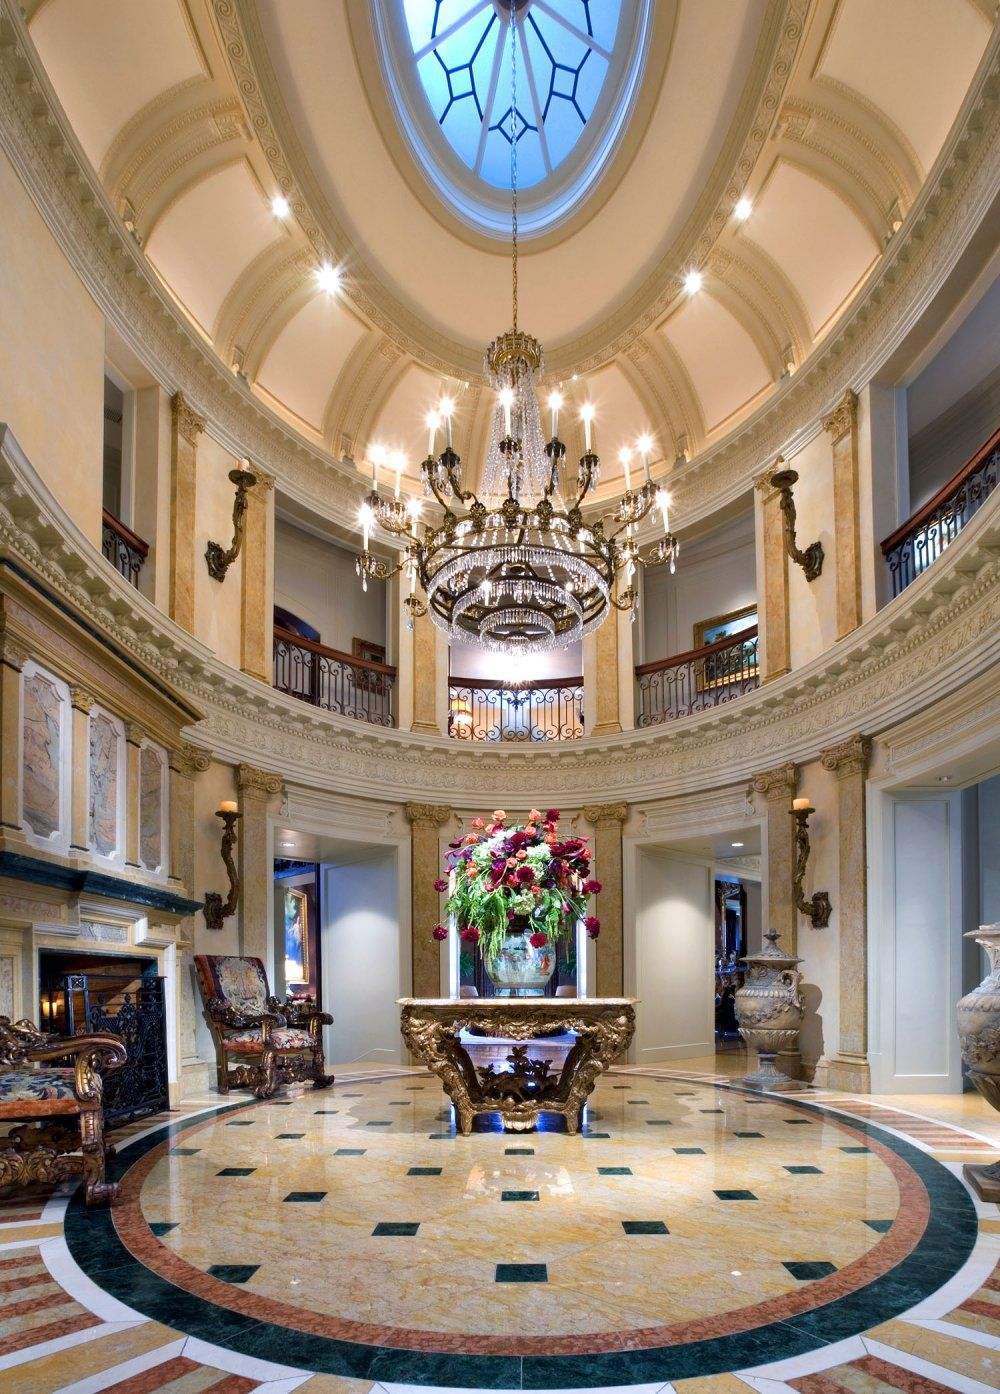 Residential Foyer Lighting : Beautiful residential rotunda foyer dramatic crystal